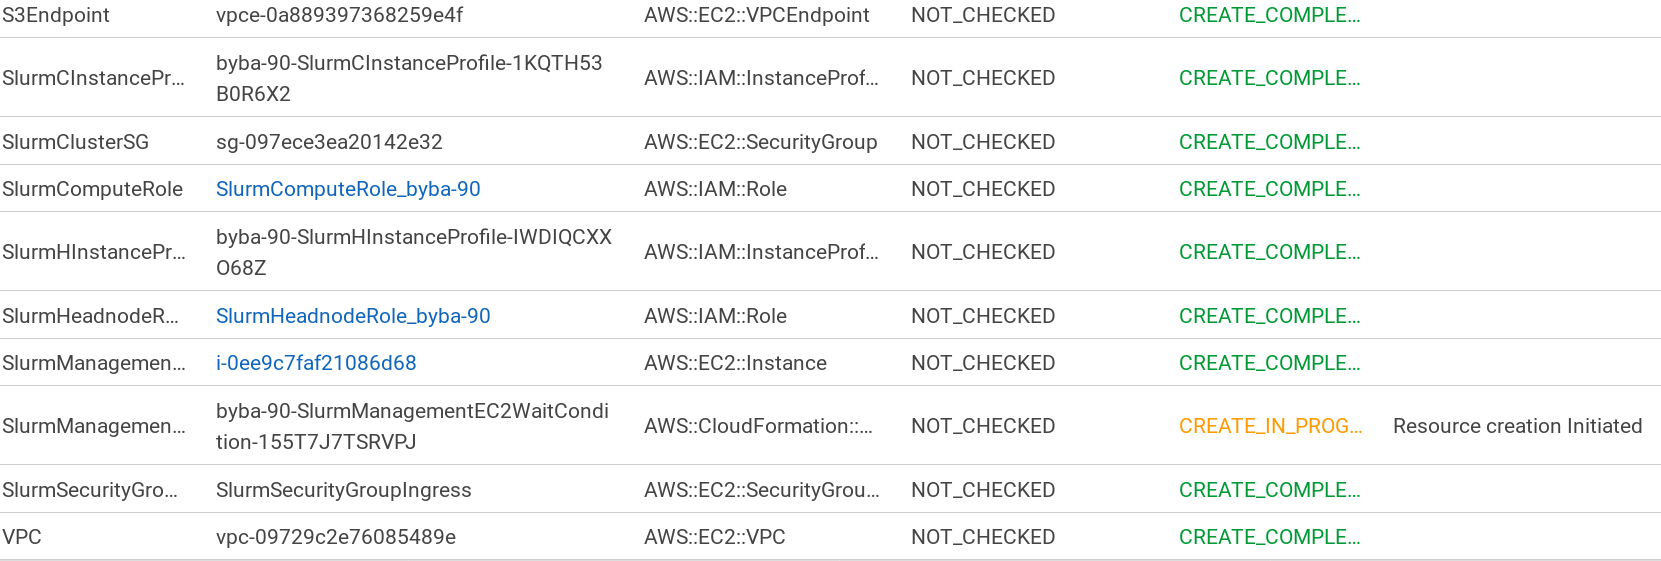 RESOURCE NOT CREATED AWS::CloudFormation::WaitCondition